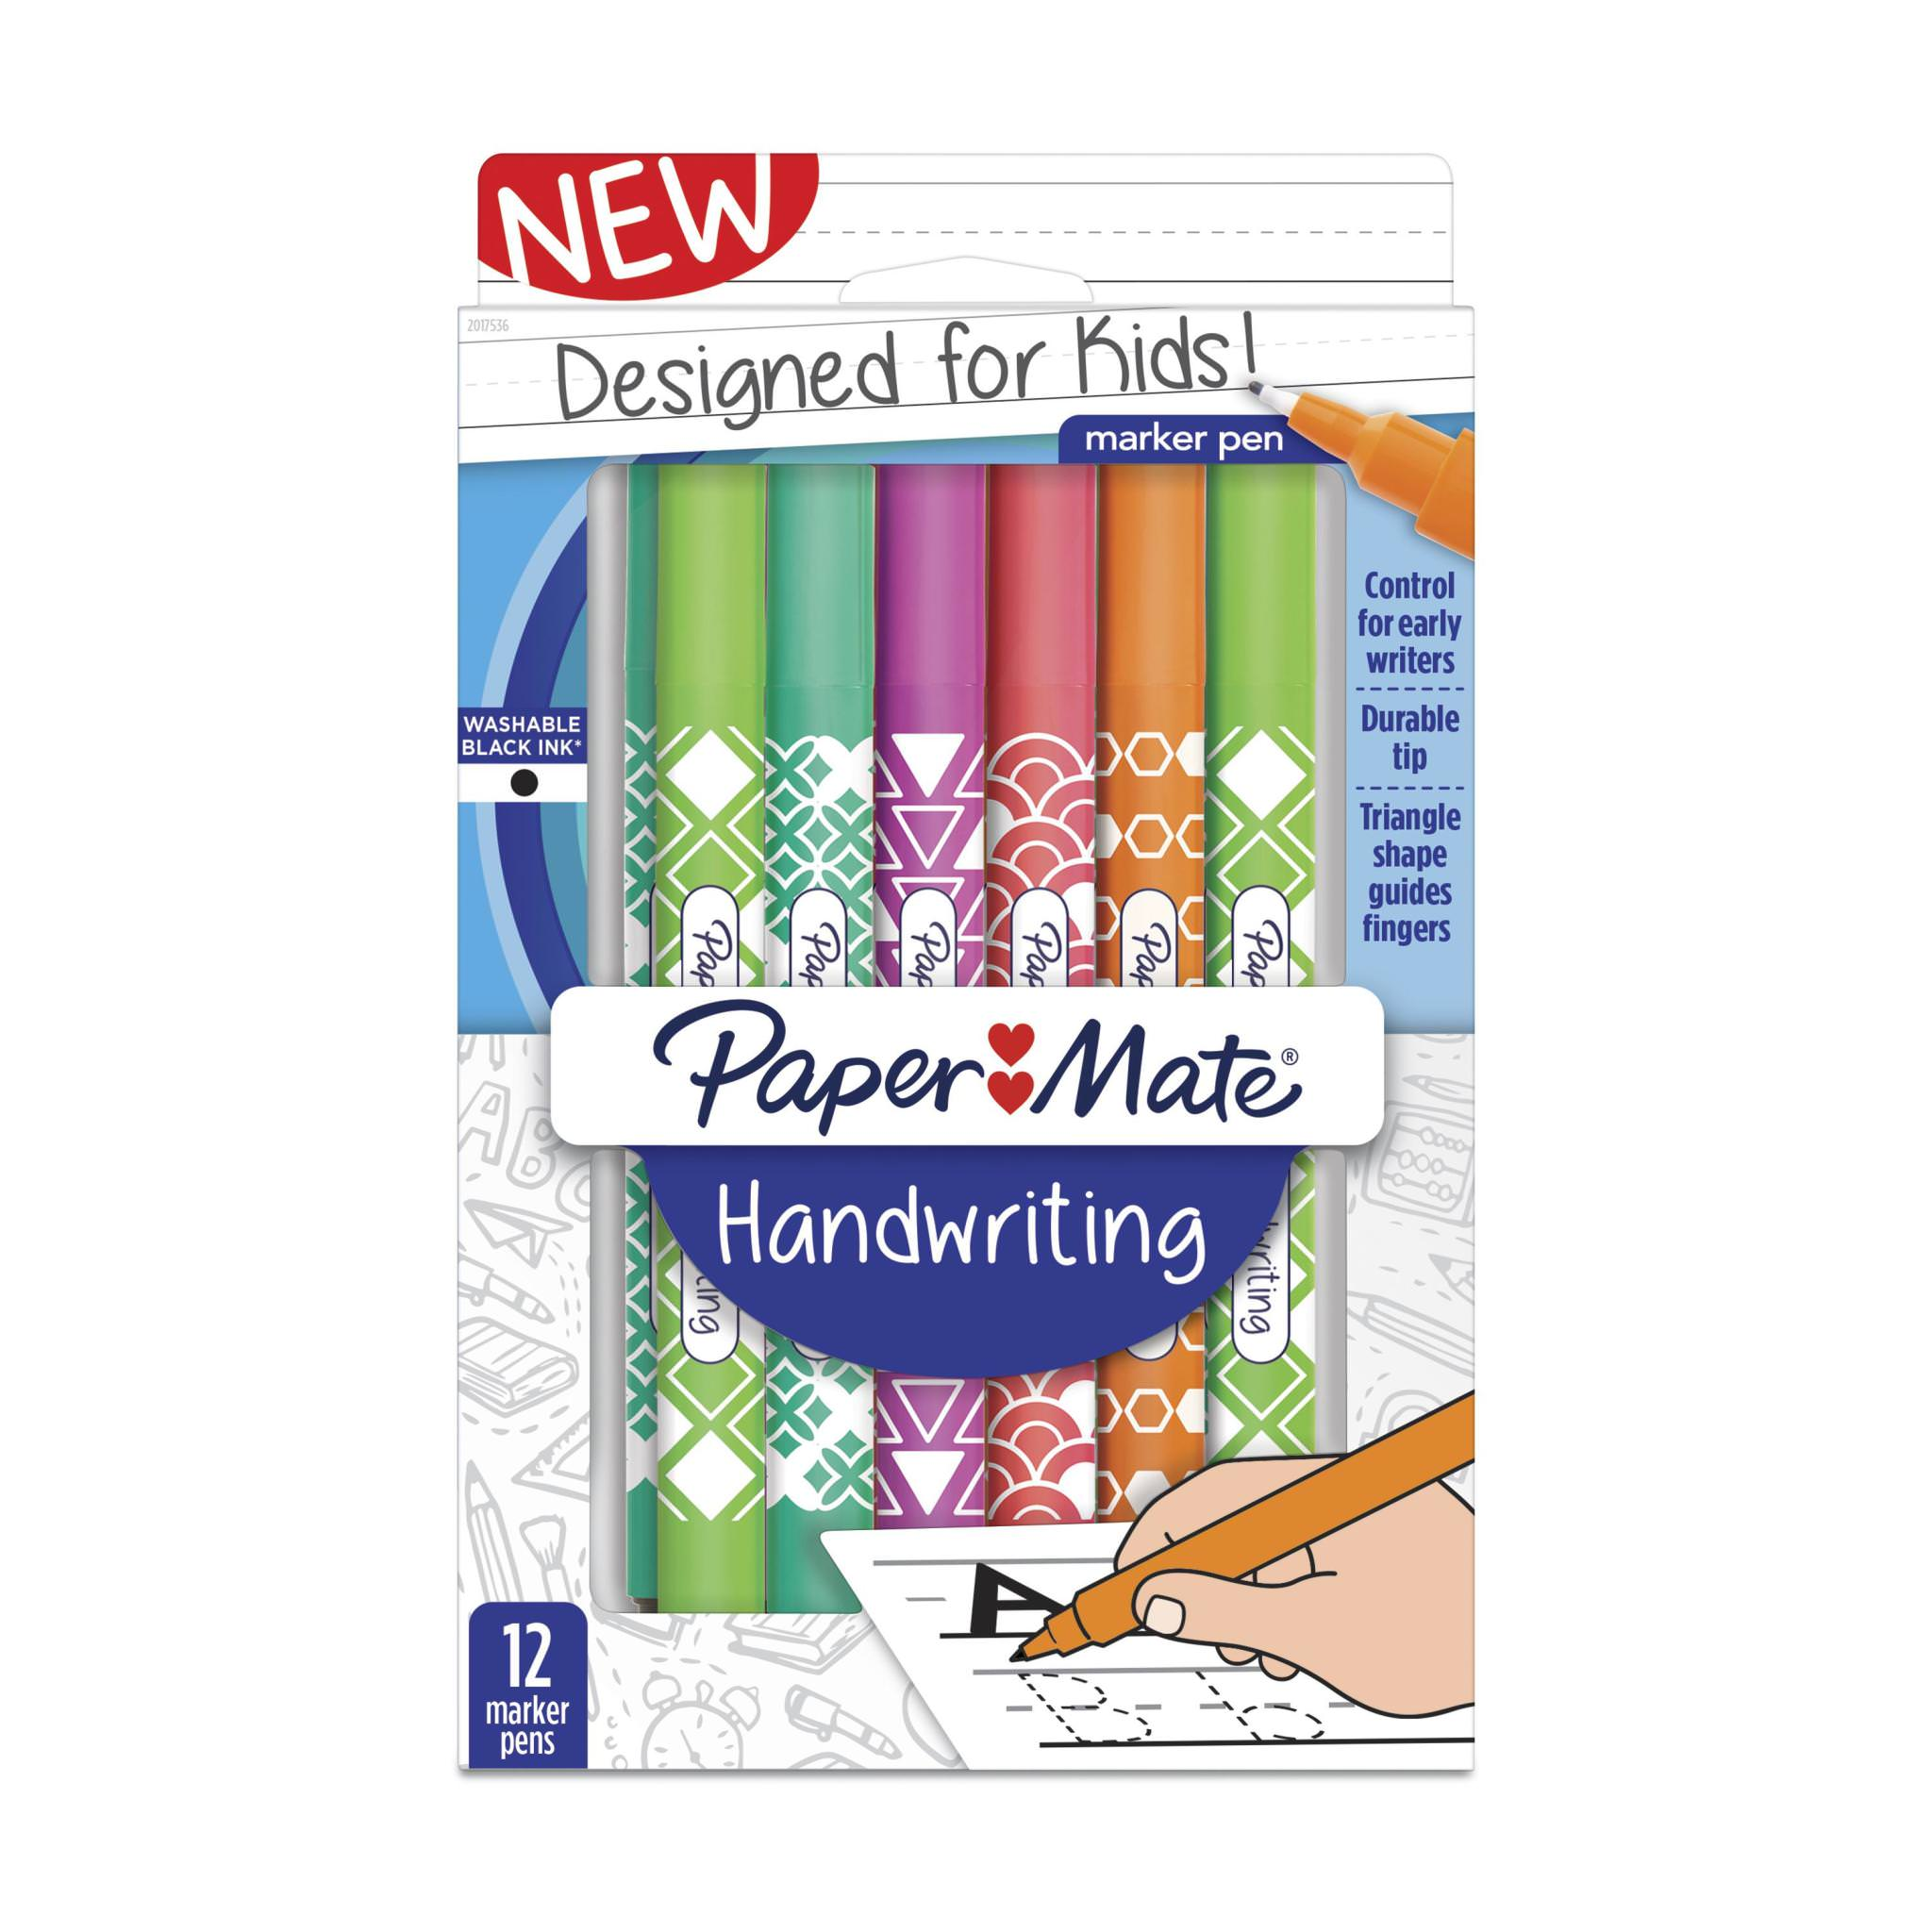 Paper Mate Handwriting Triangular Pens, Washable Black Ink, Fashion Wraps, 12 Count